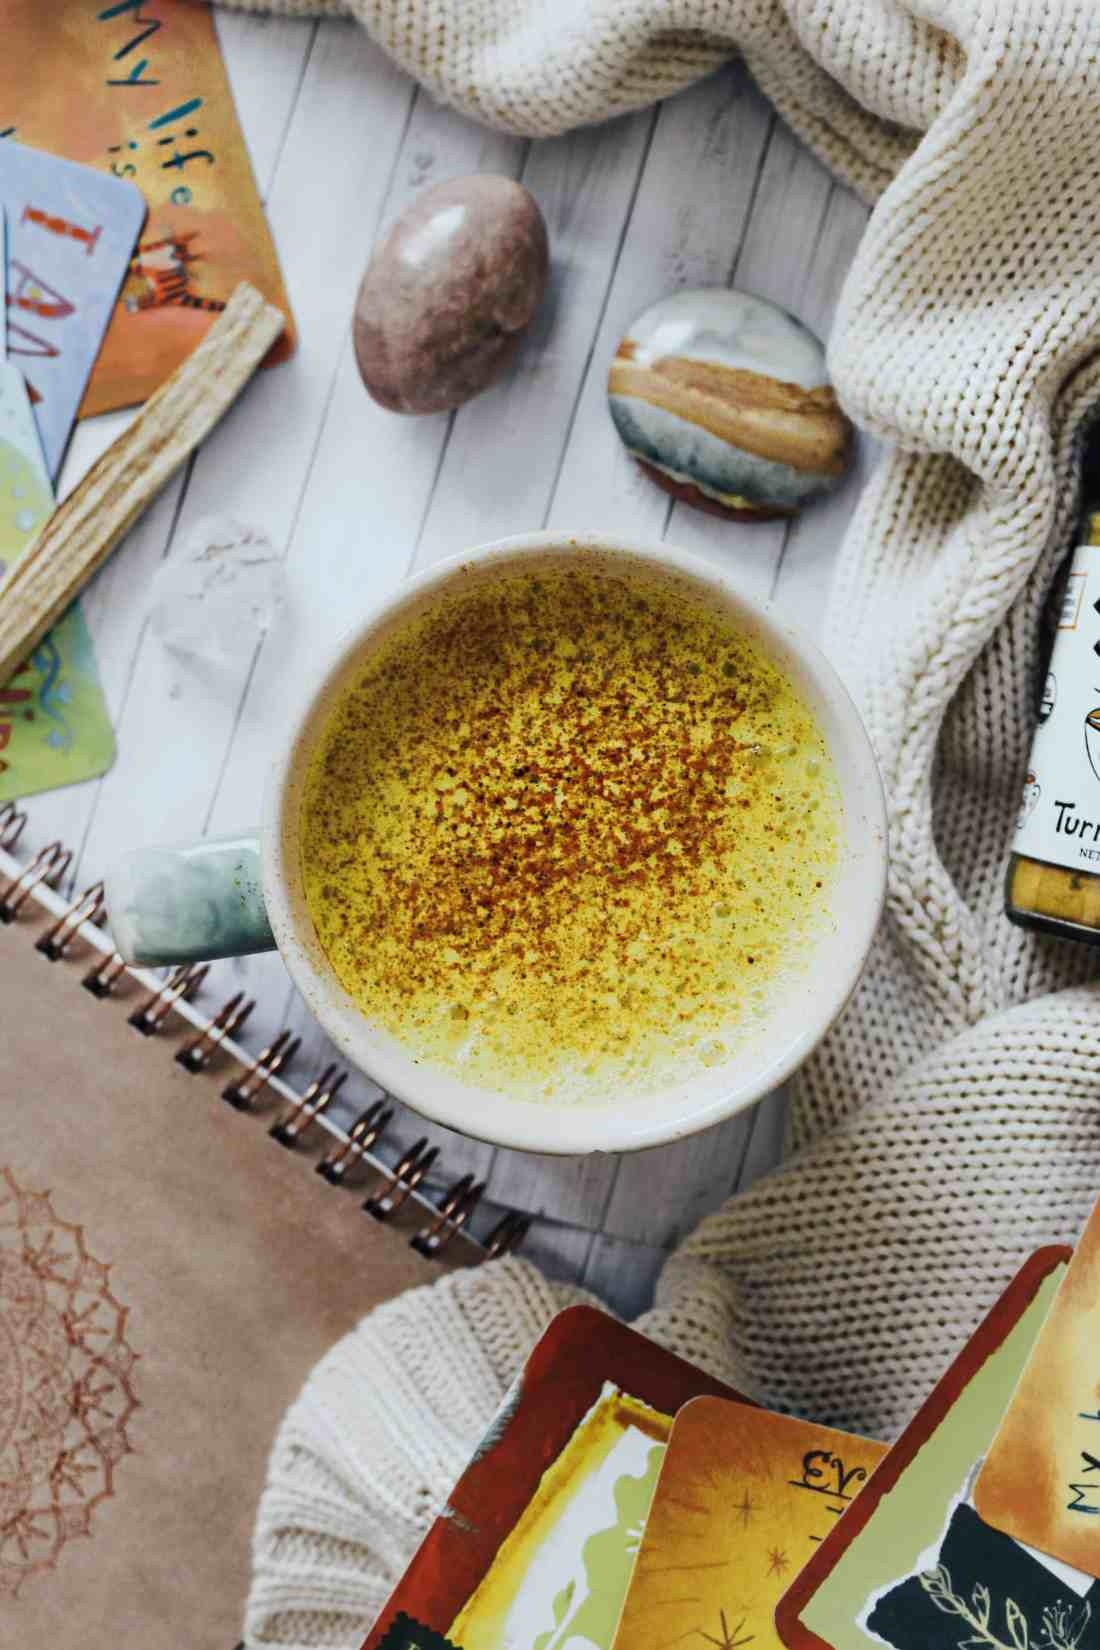 This homemade turmeric latte, commonly known as the ancient Ayurvedic beverage: Golden Milk..is easy to make, diary free & full of anti-inflammatory spices!